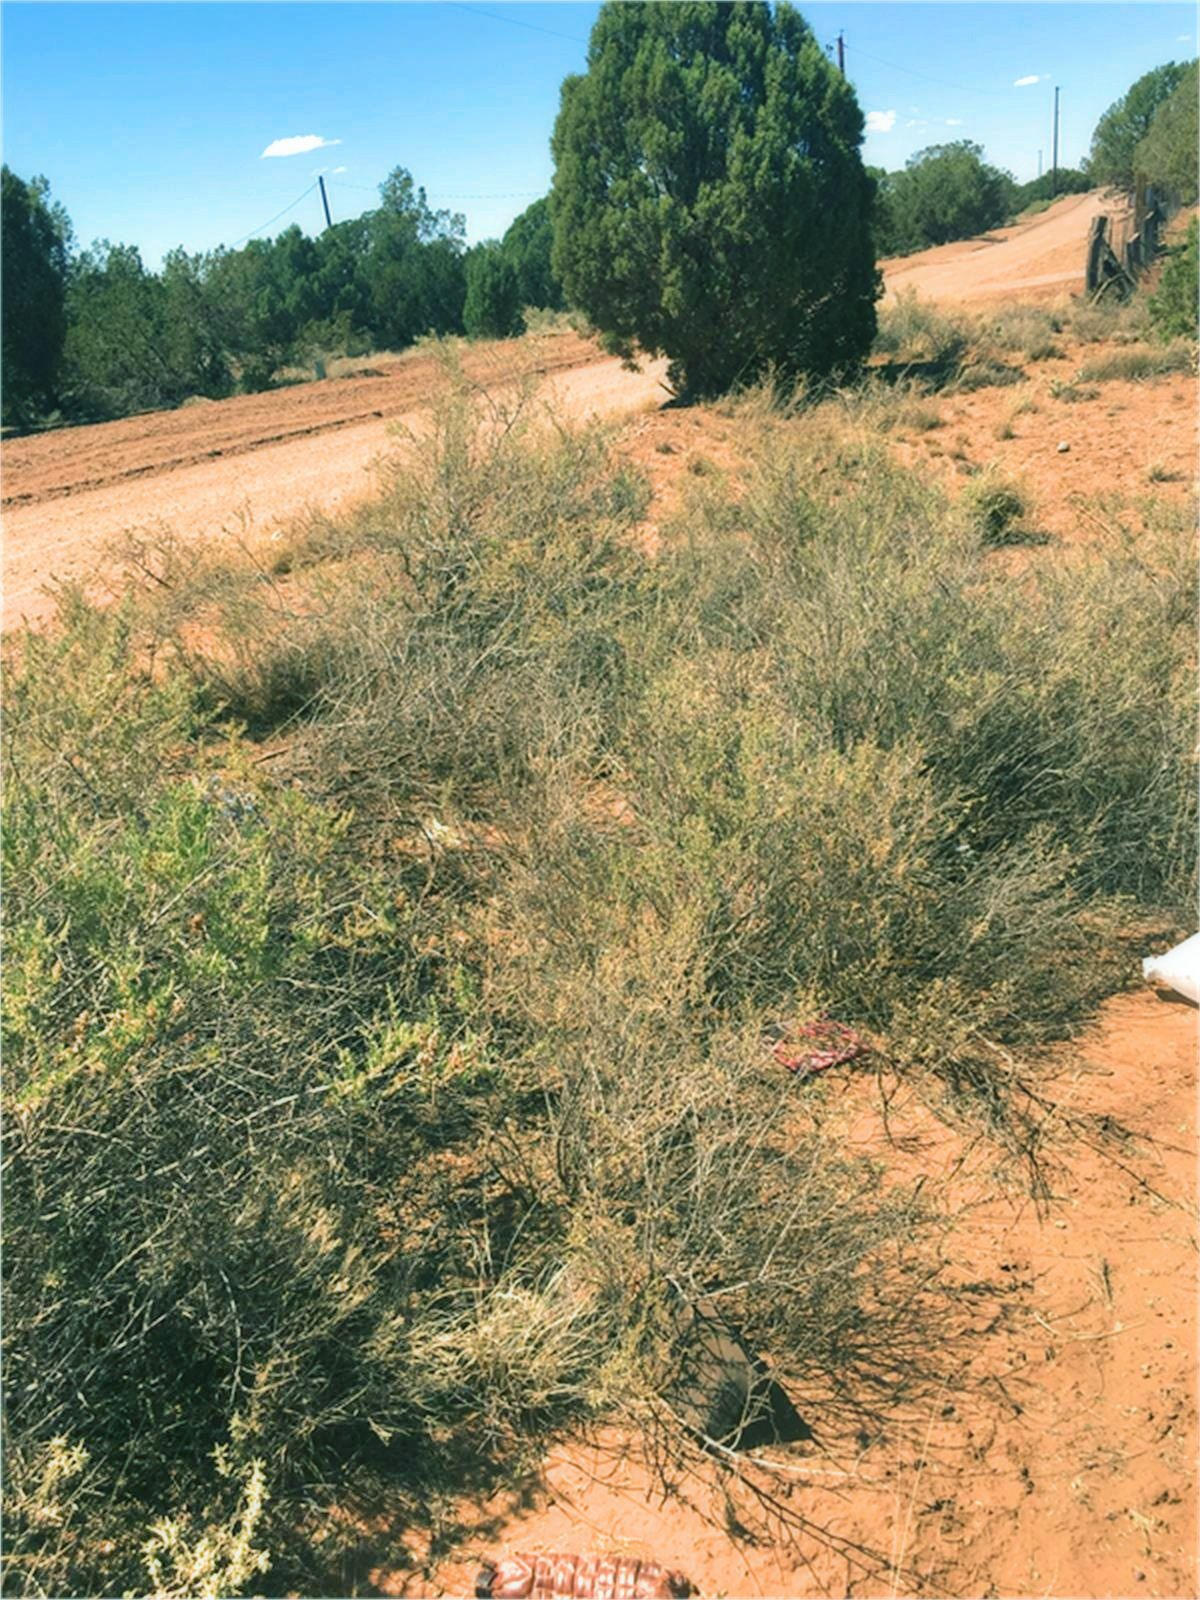 4451 Clydesdale Rd Snowflake Az - Dirt Road